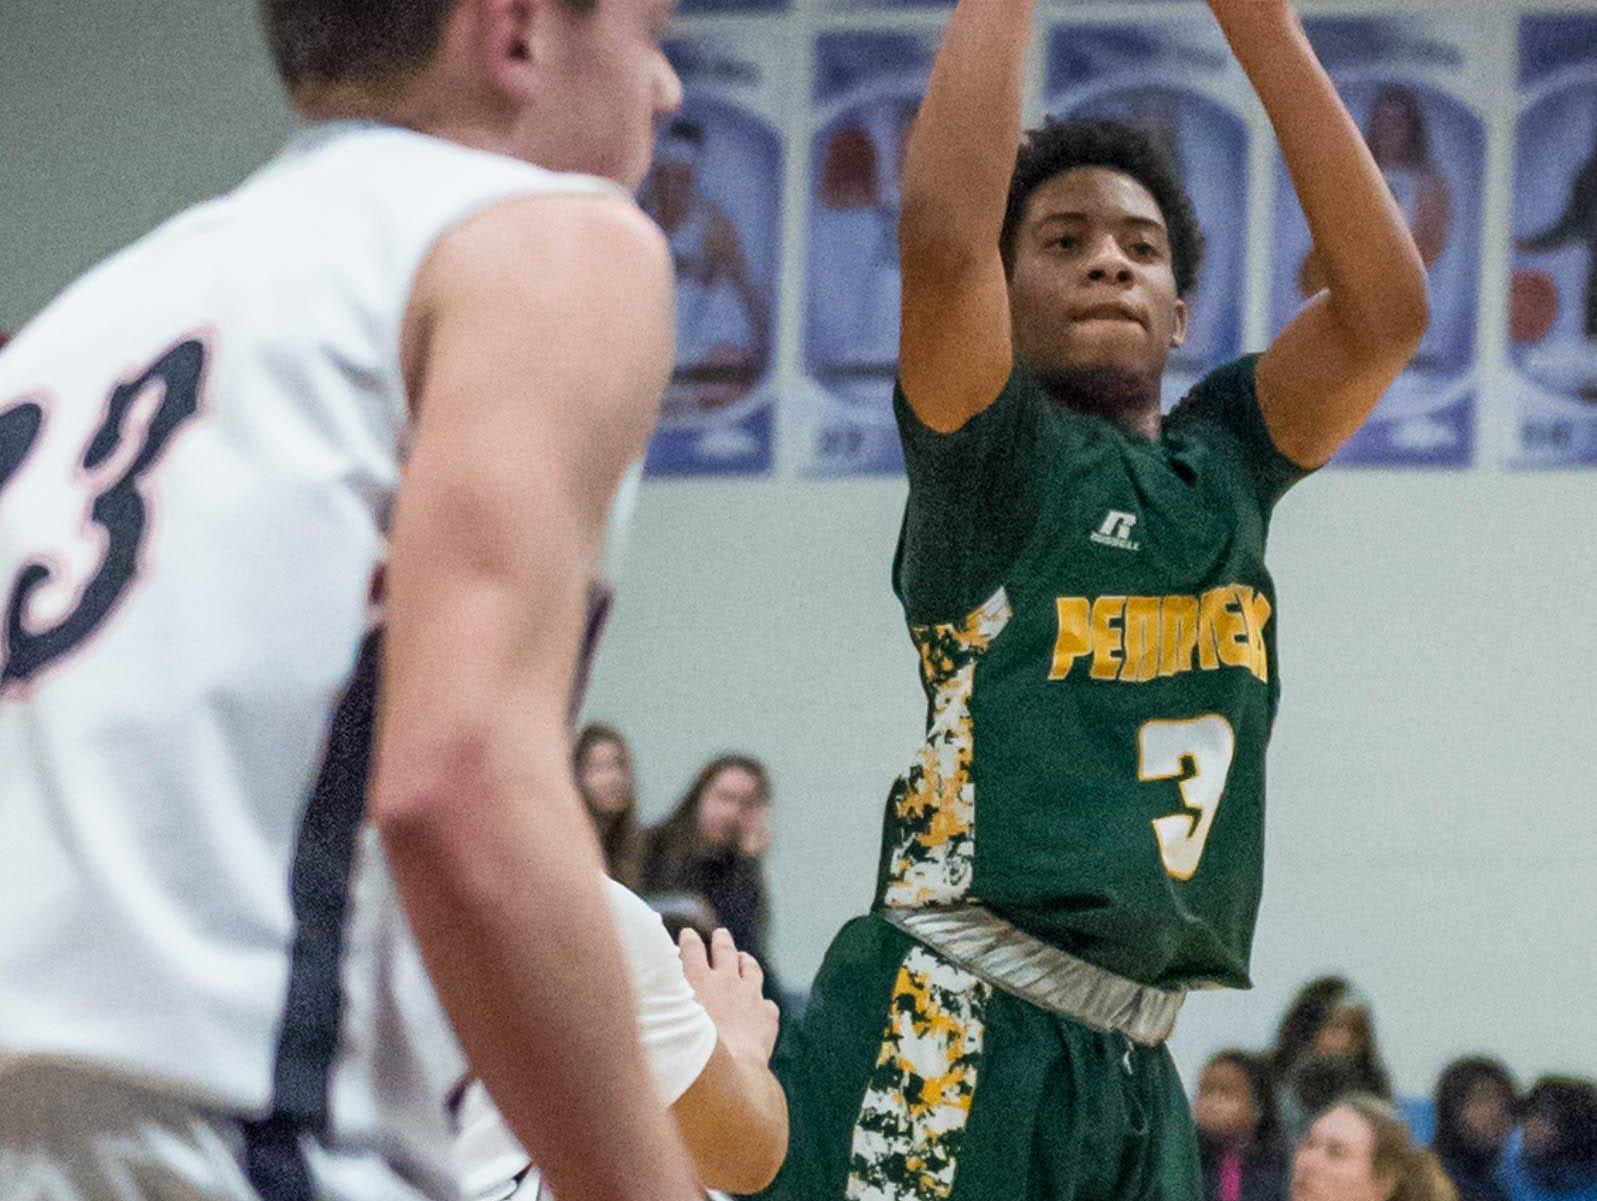 Pennfield's Ronald Jamierson (3) goes for the hoop during Monday's district game.